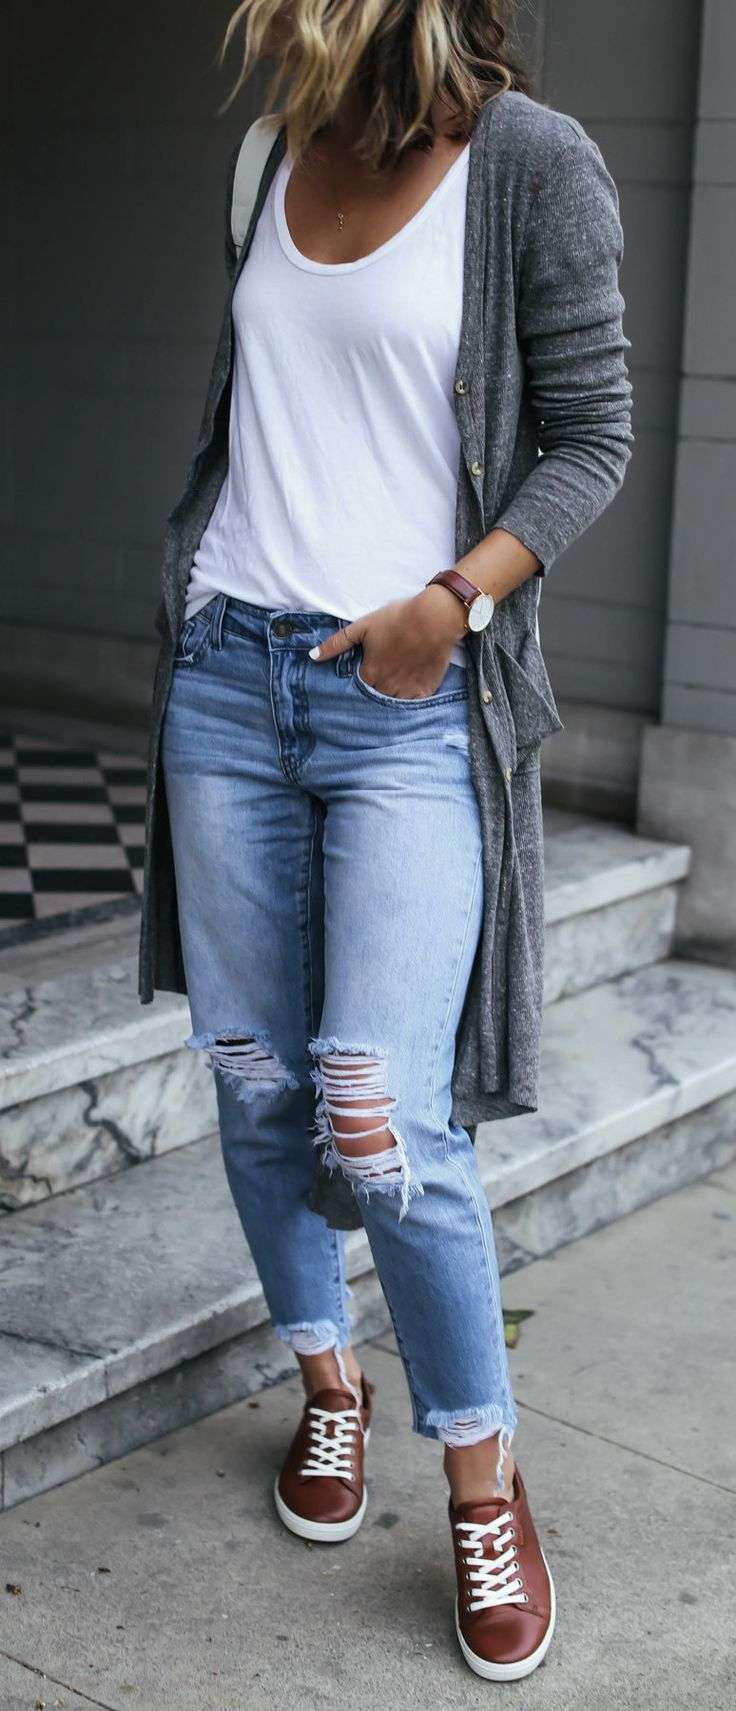 best sapatinho images on pinterest casual outfits clothes and